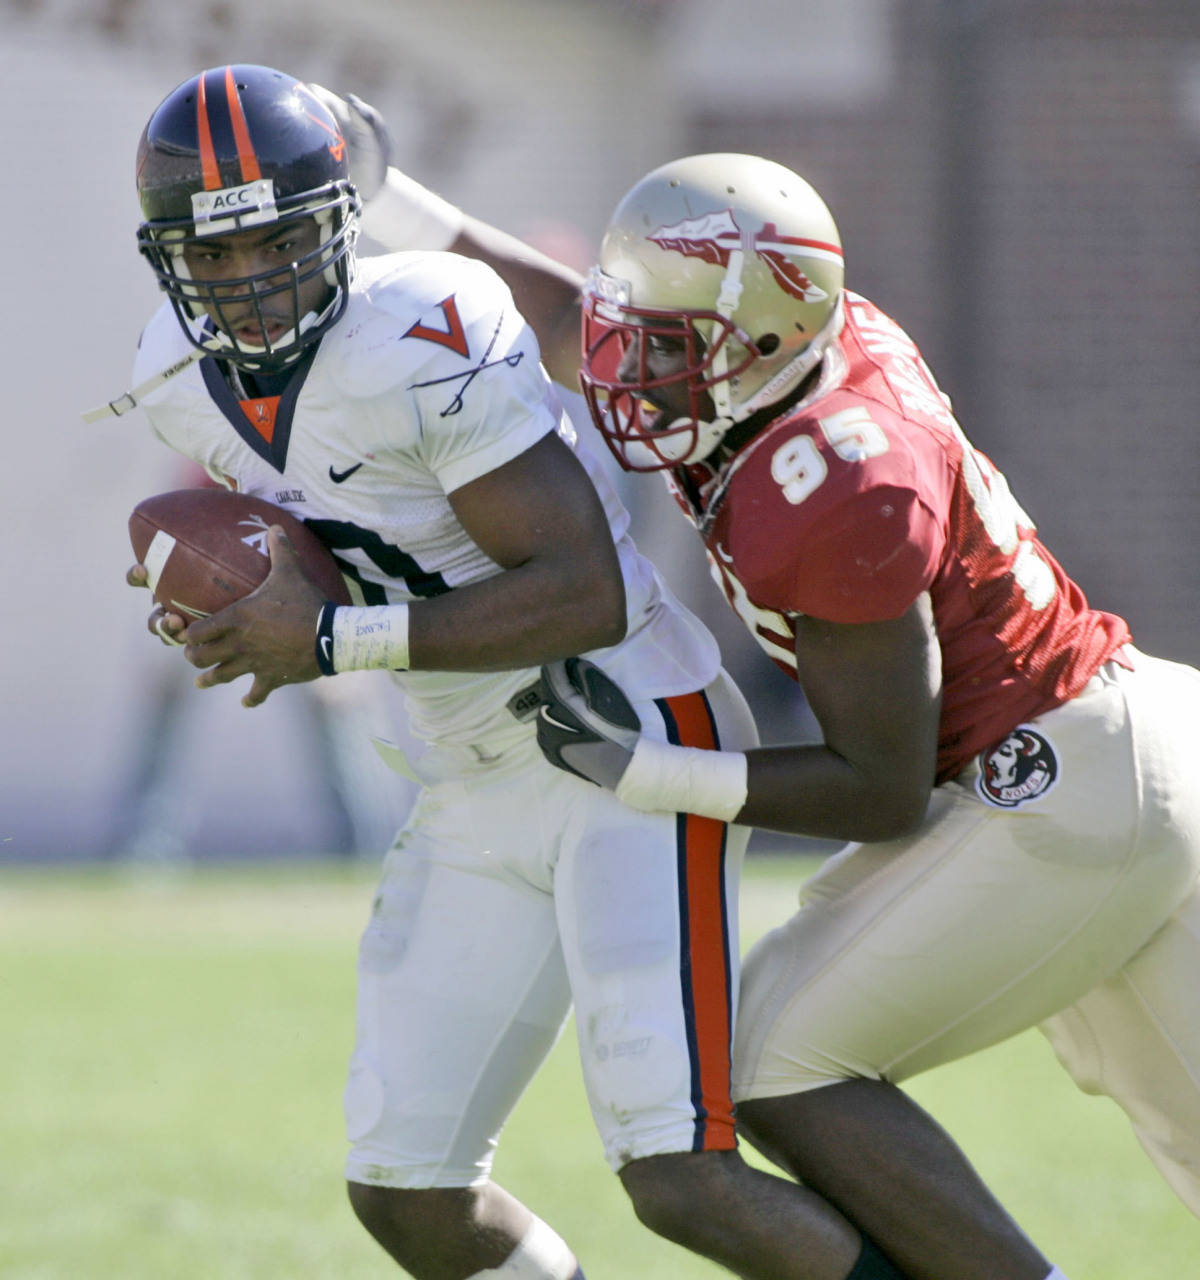 Virginia quarterback Jameel Sewell, left, is sacked in the second quarter of a college football game by Florida State's Kevin McNeil, Saturday, Nov. 4, 2006, in Tallahassee, Fla. (AP Photo/Phil Coale)